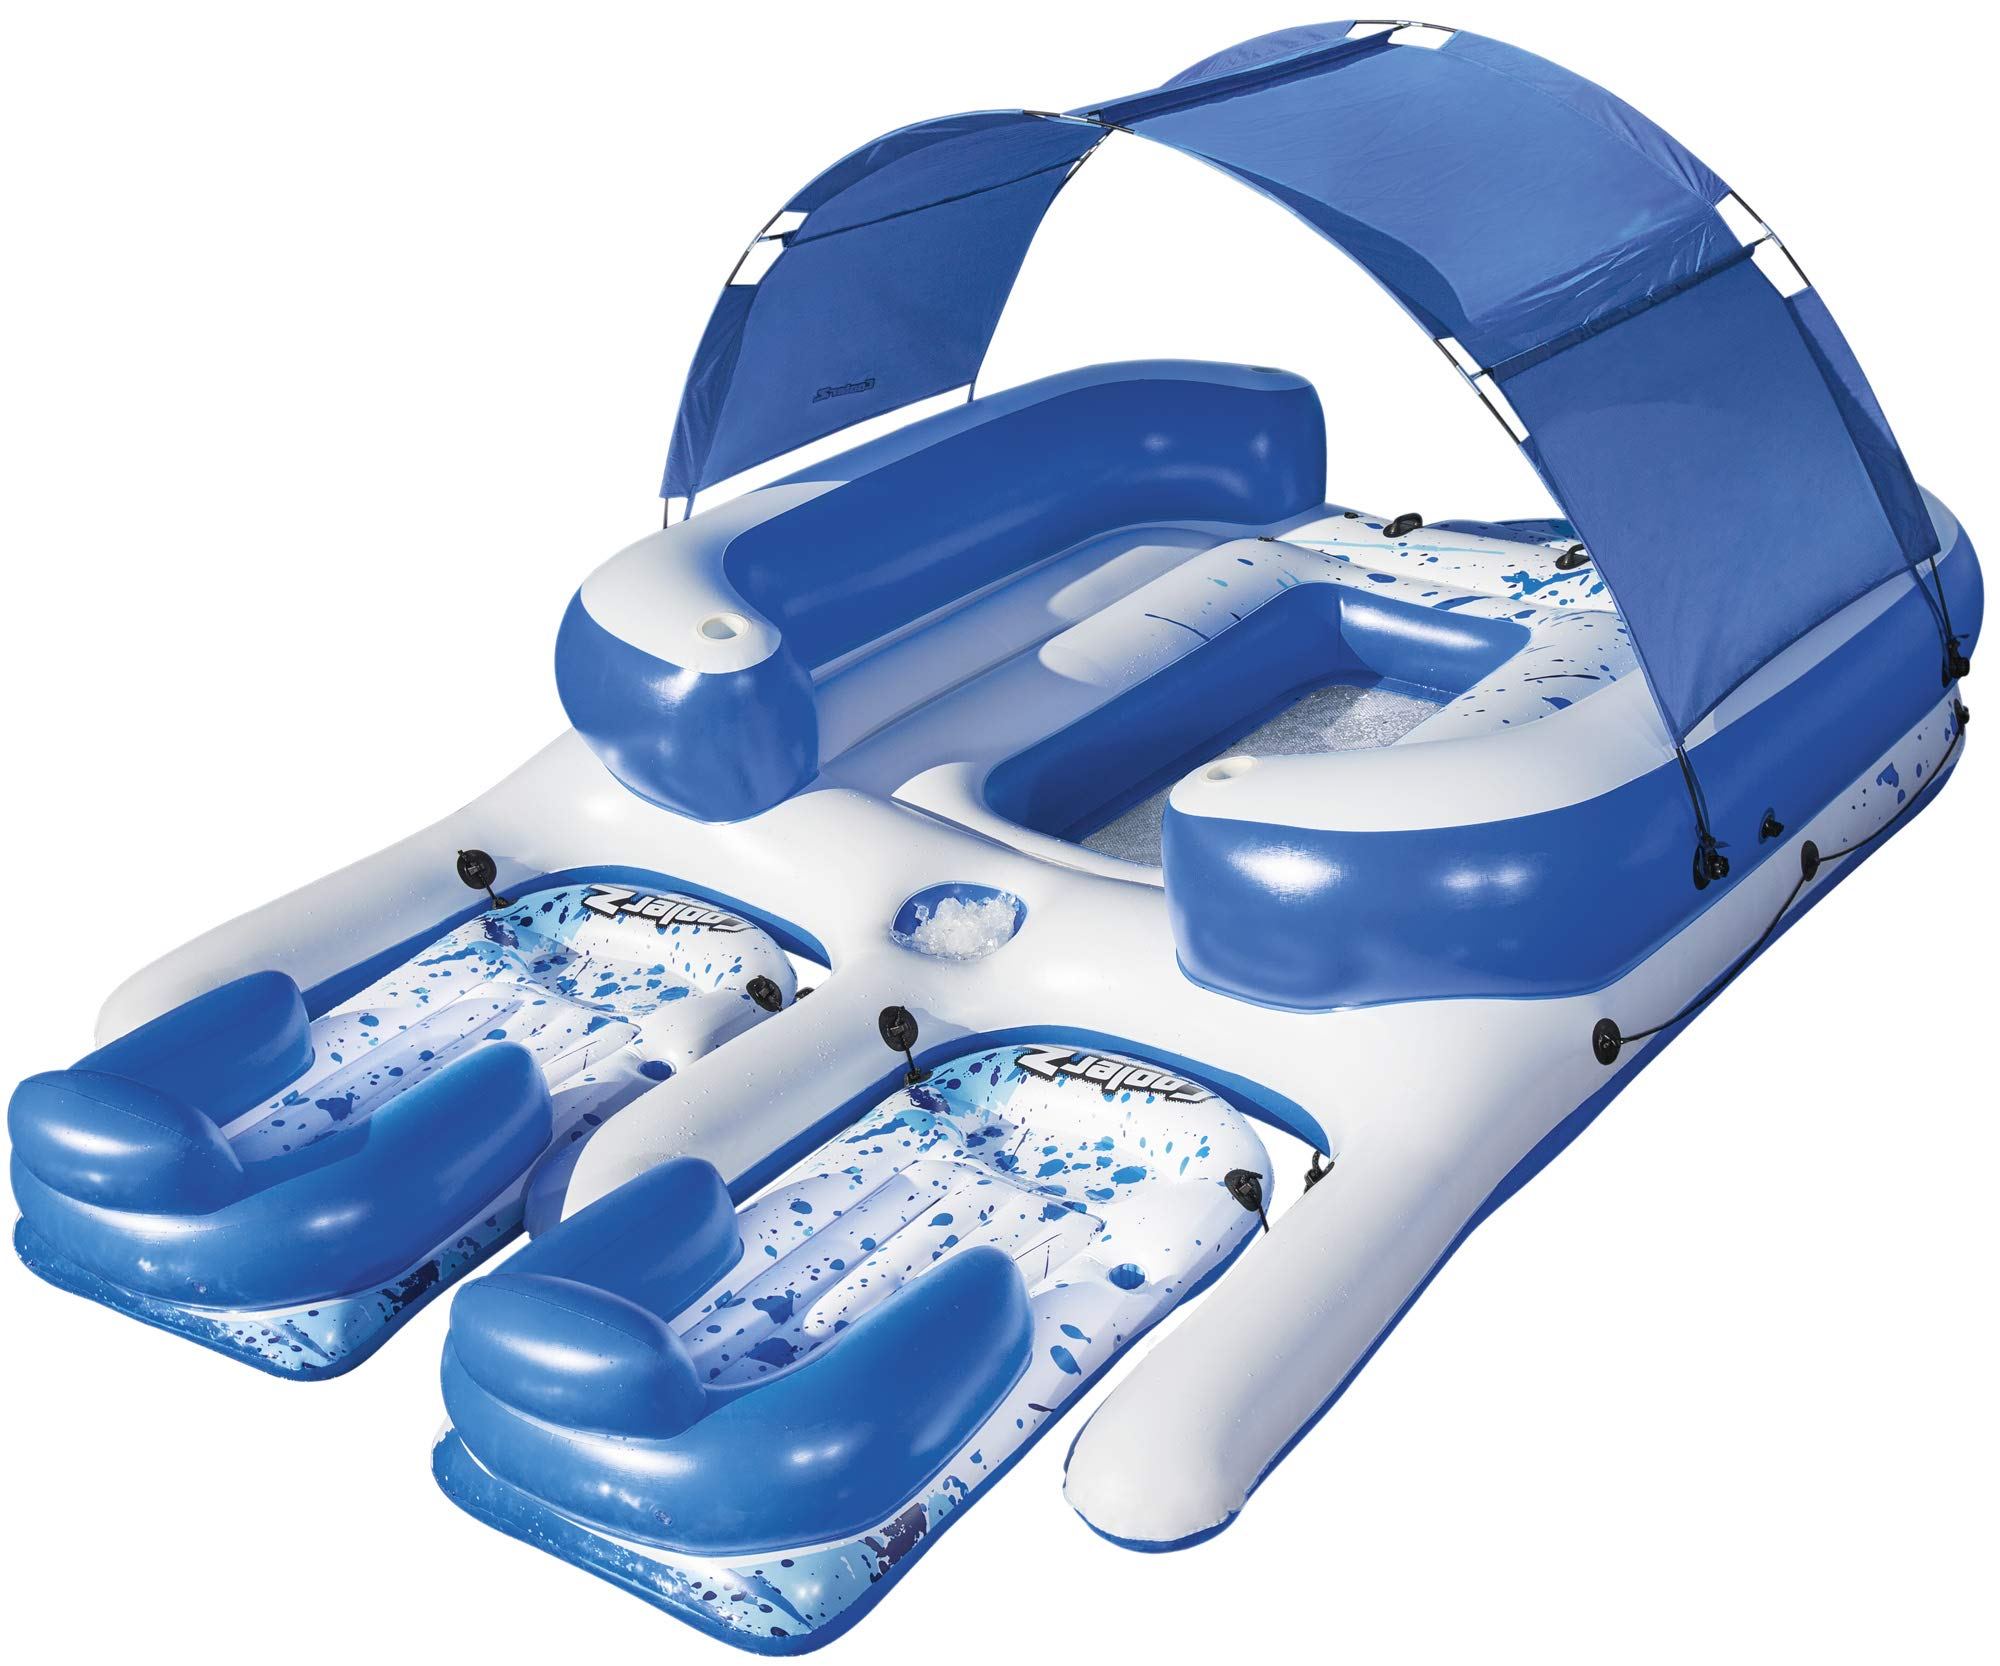 Bestway Tropical Inflatable 8 Person Connecting